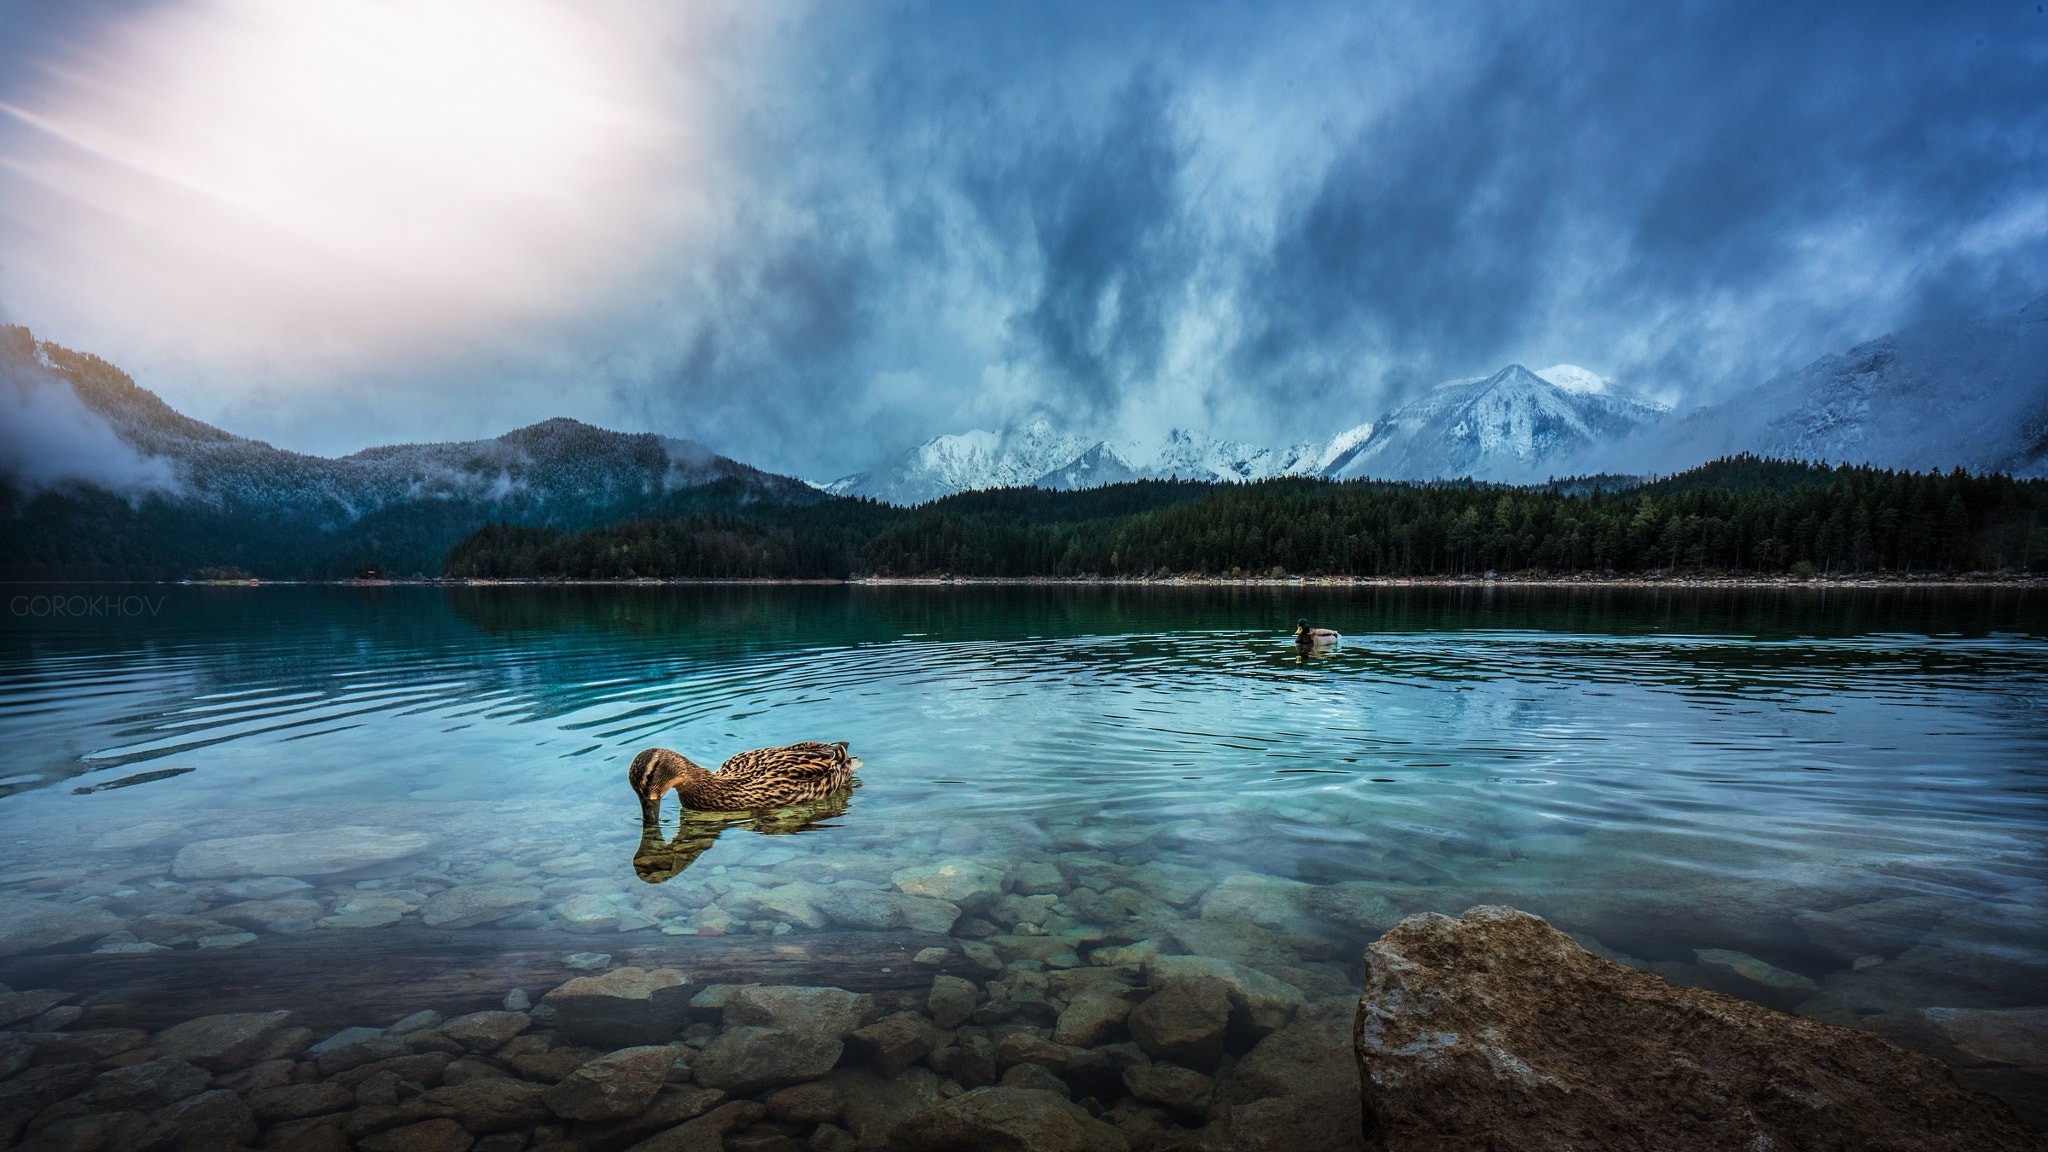 General 2048x1152 Ivan Gorokhov nature duck animals water mountains 500px cyan